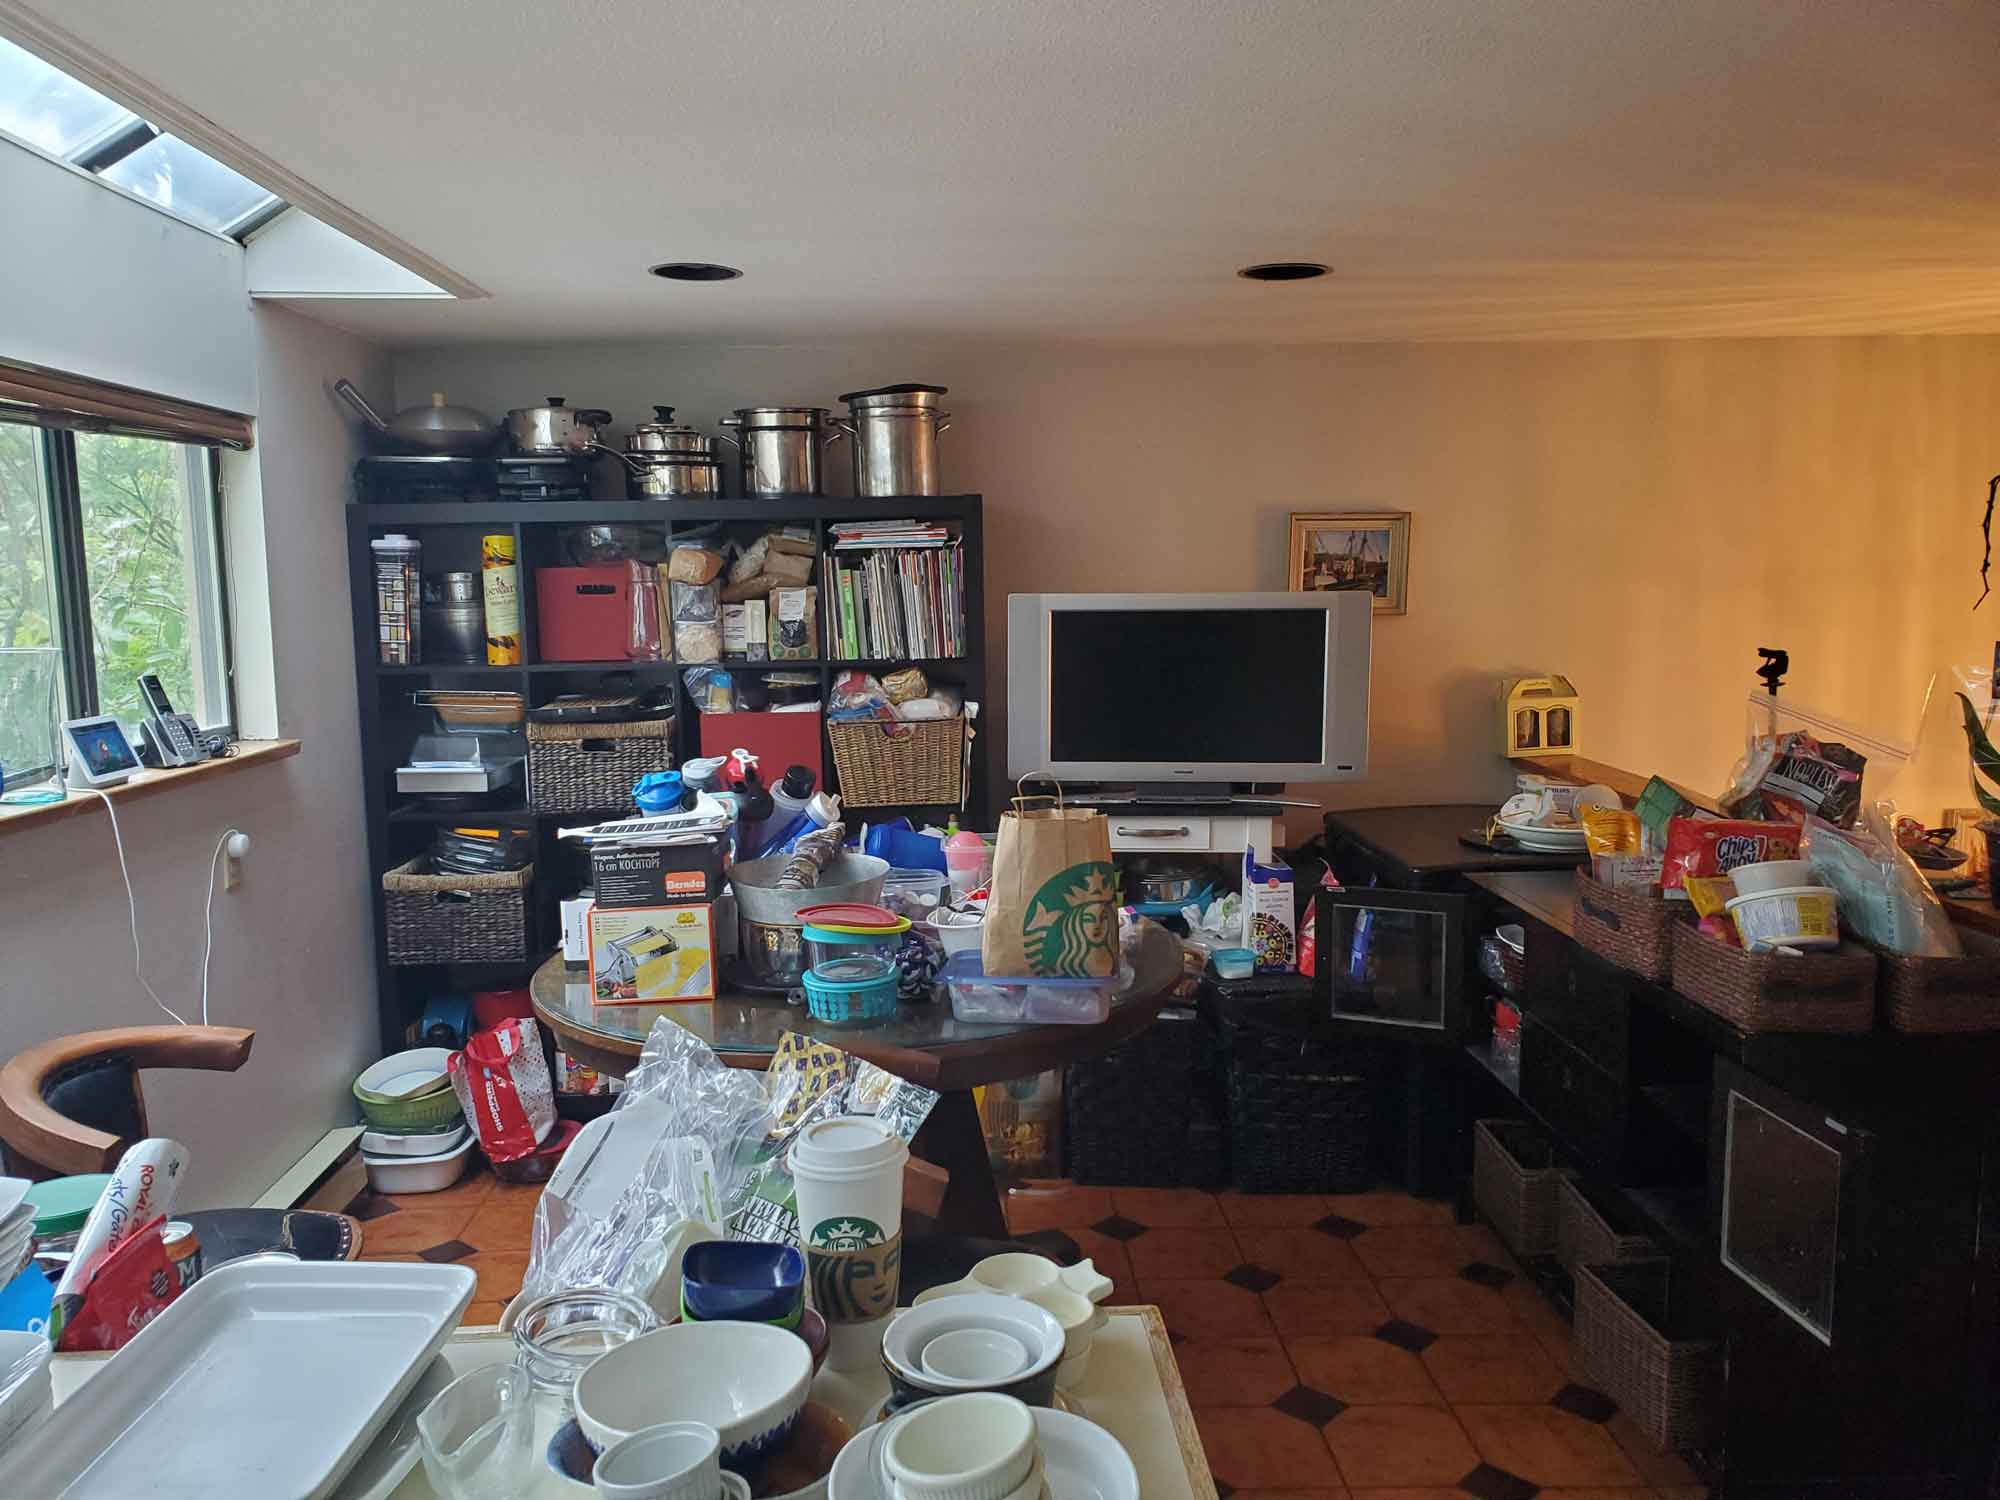 Kitchen table and counters full of items making them inaccessible